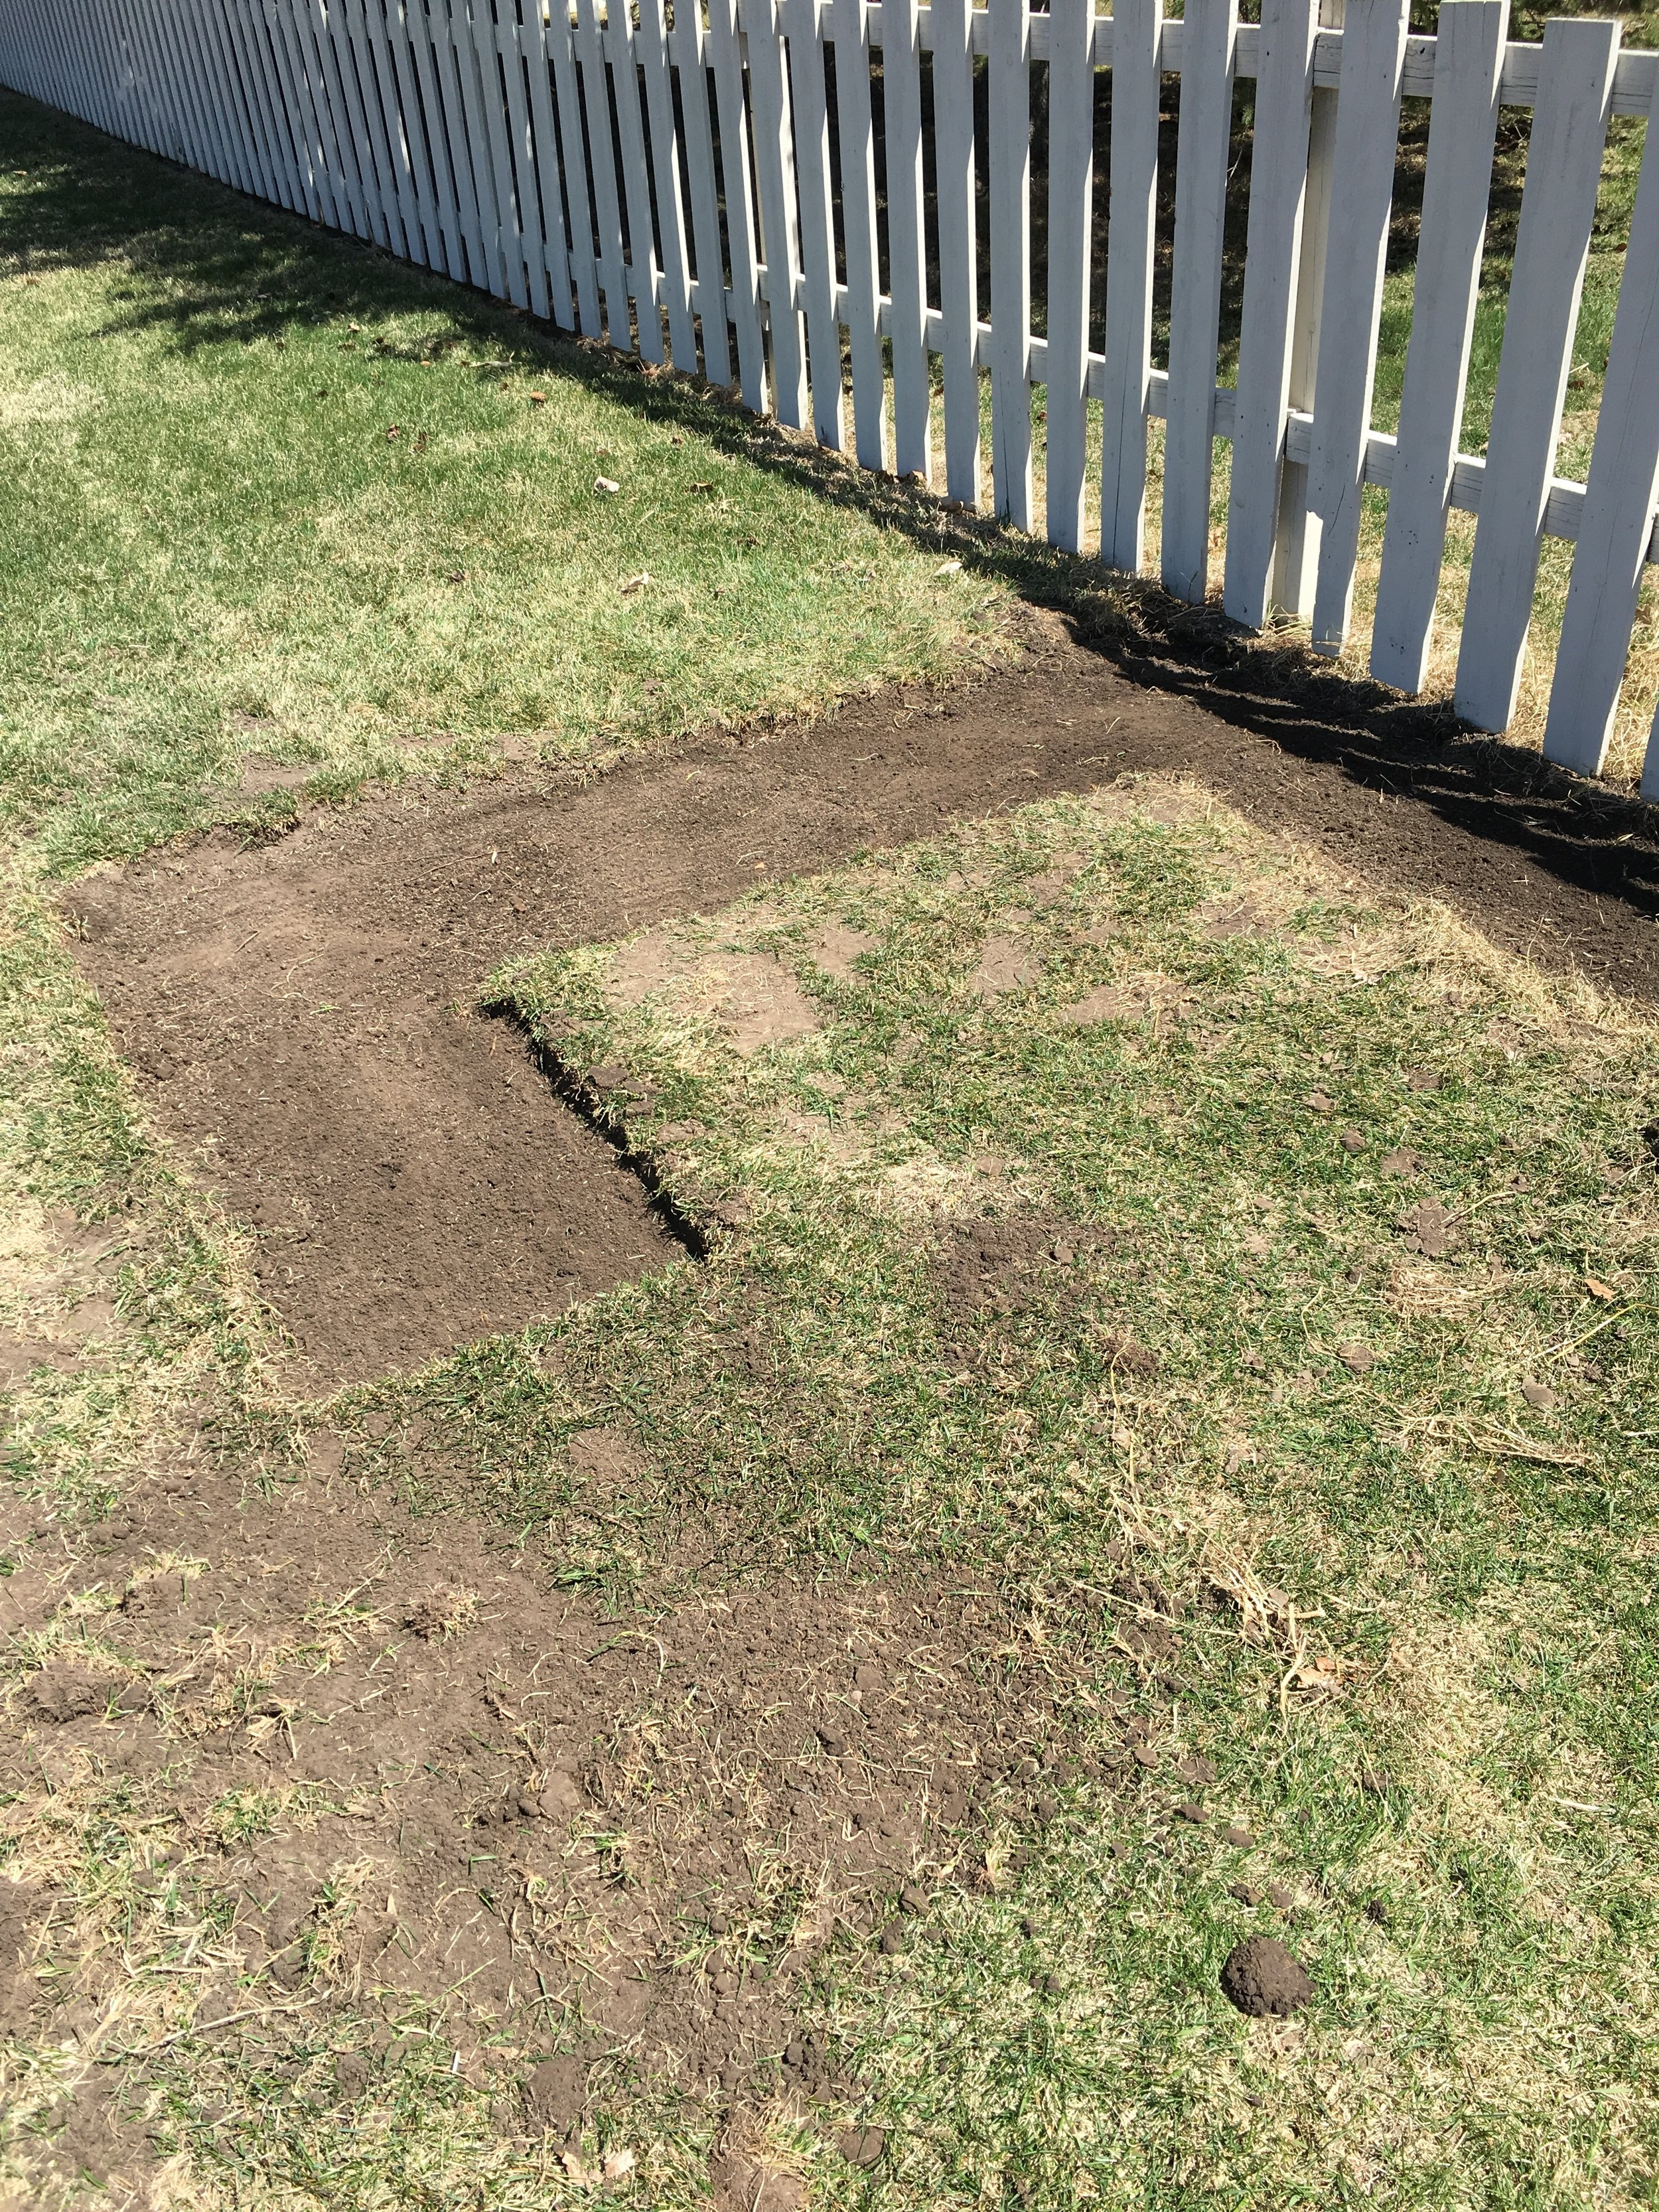 Looks small but it is actually about 10' x12' x 6'. I also have other garden beds (not on pic) that have direct sewn veggie seeds waiting to sprout.